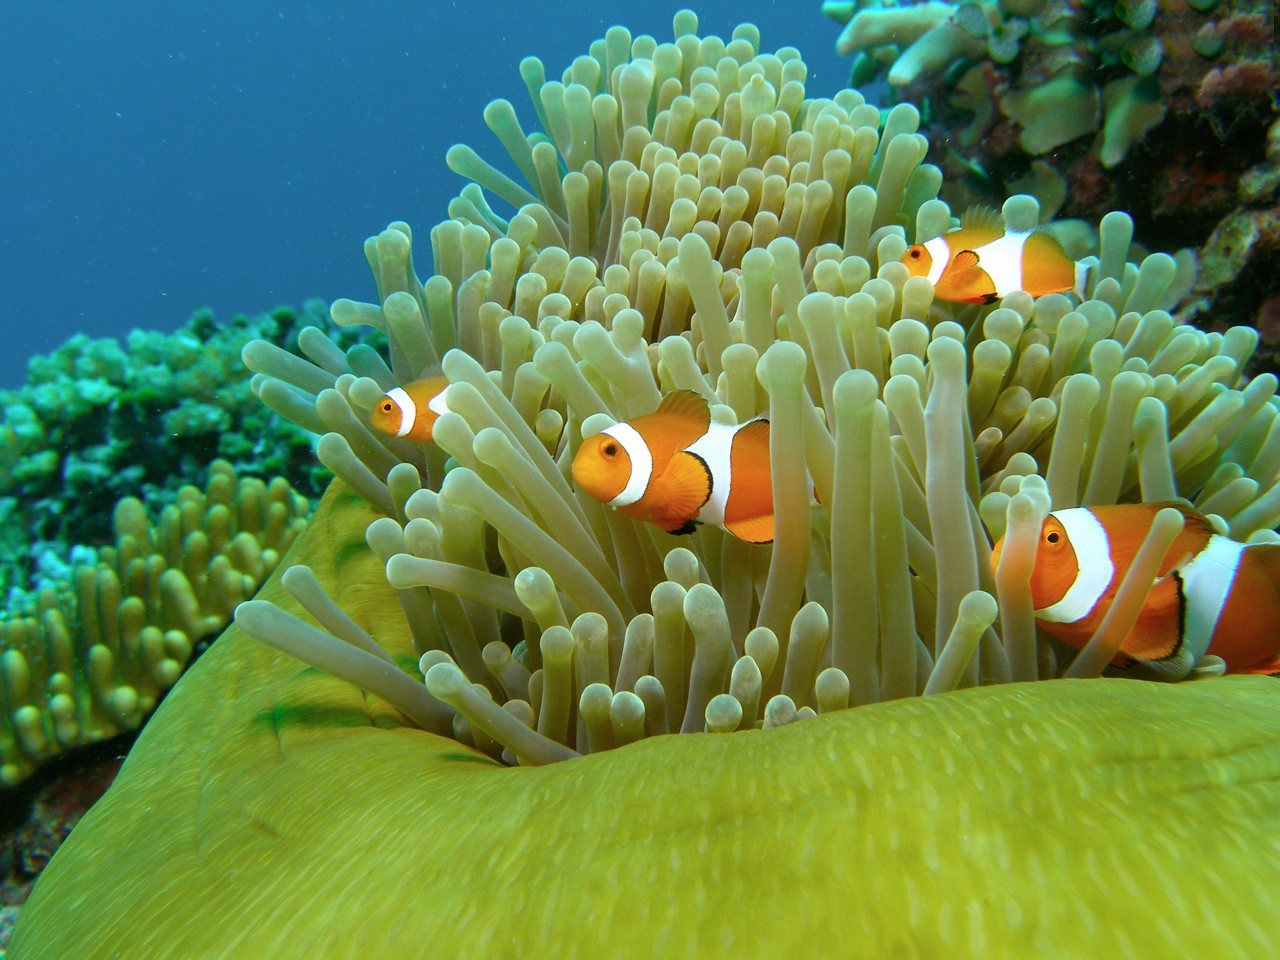 Clown fish wallpaper hd wallpapersafari for Swimming fish screensaver